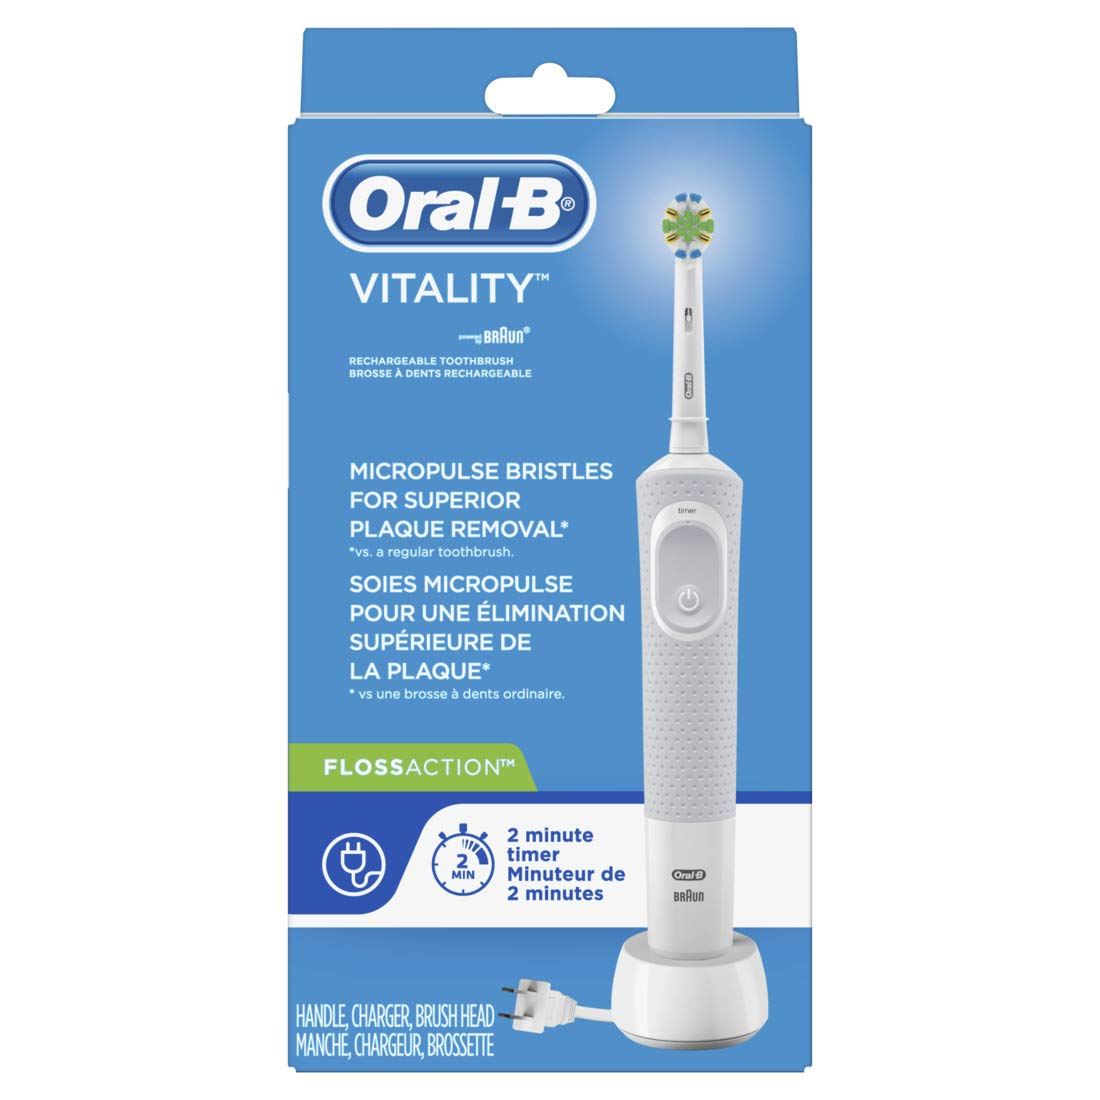 Oral-B Vitality FlossAction Rechargeable Battery Electric Toothbrush with Automatic Timer, Powered by Braun (Product Design & Packaging May Vary)